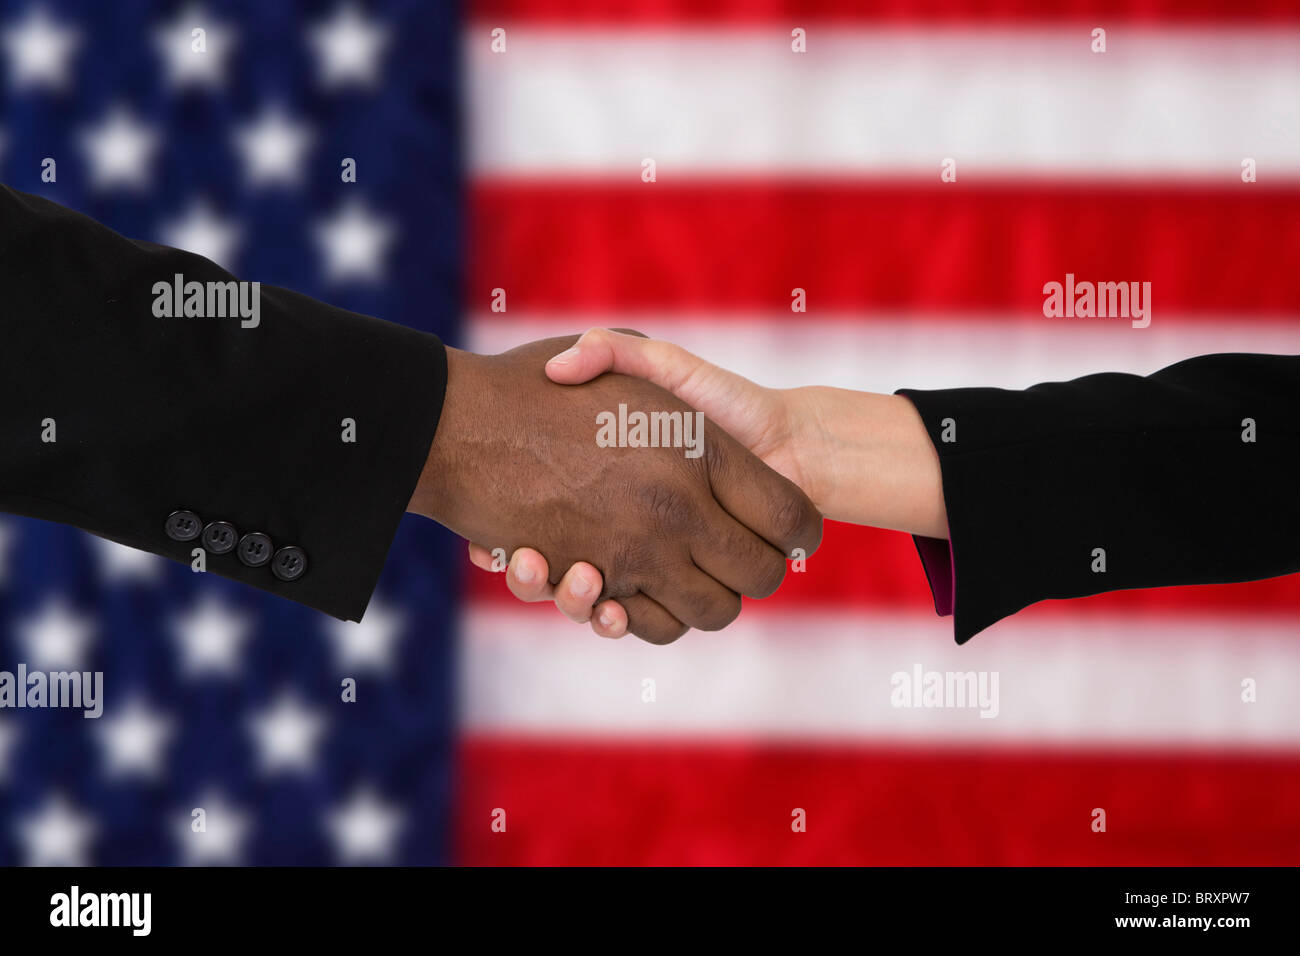 Close-up of people shaking hands against American flag - Stock Image